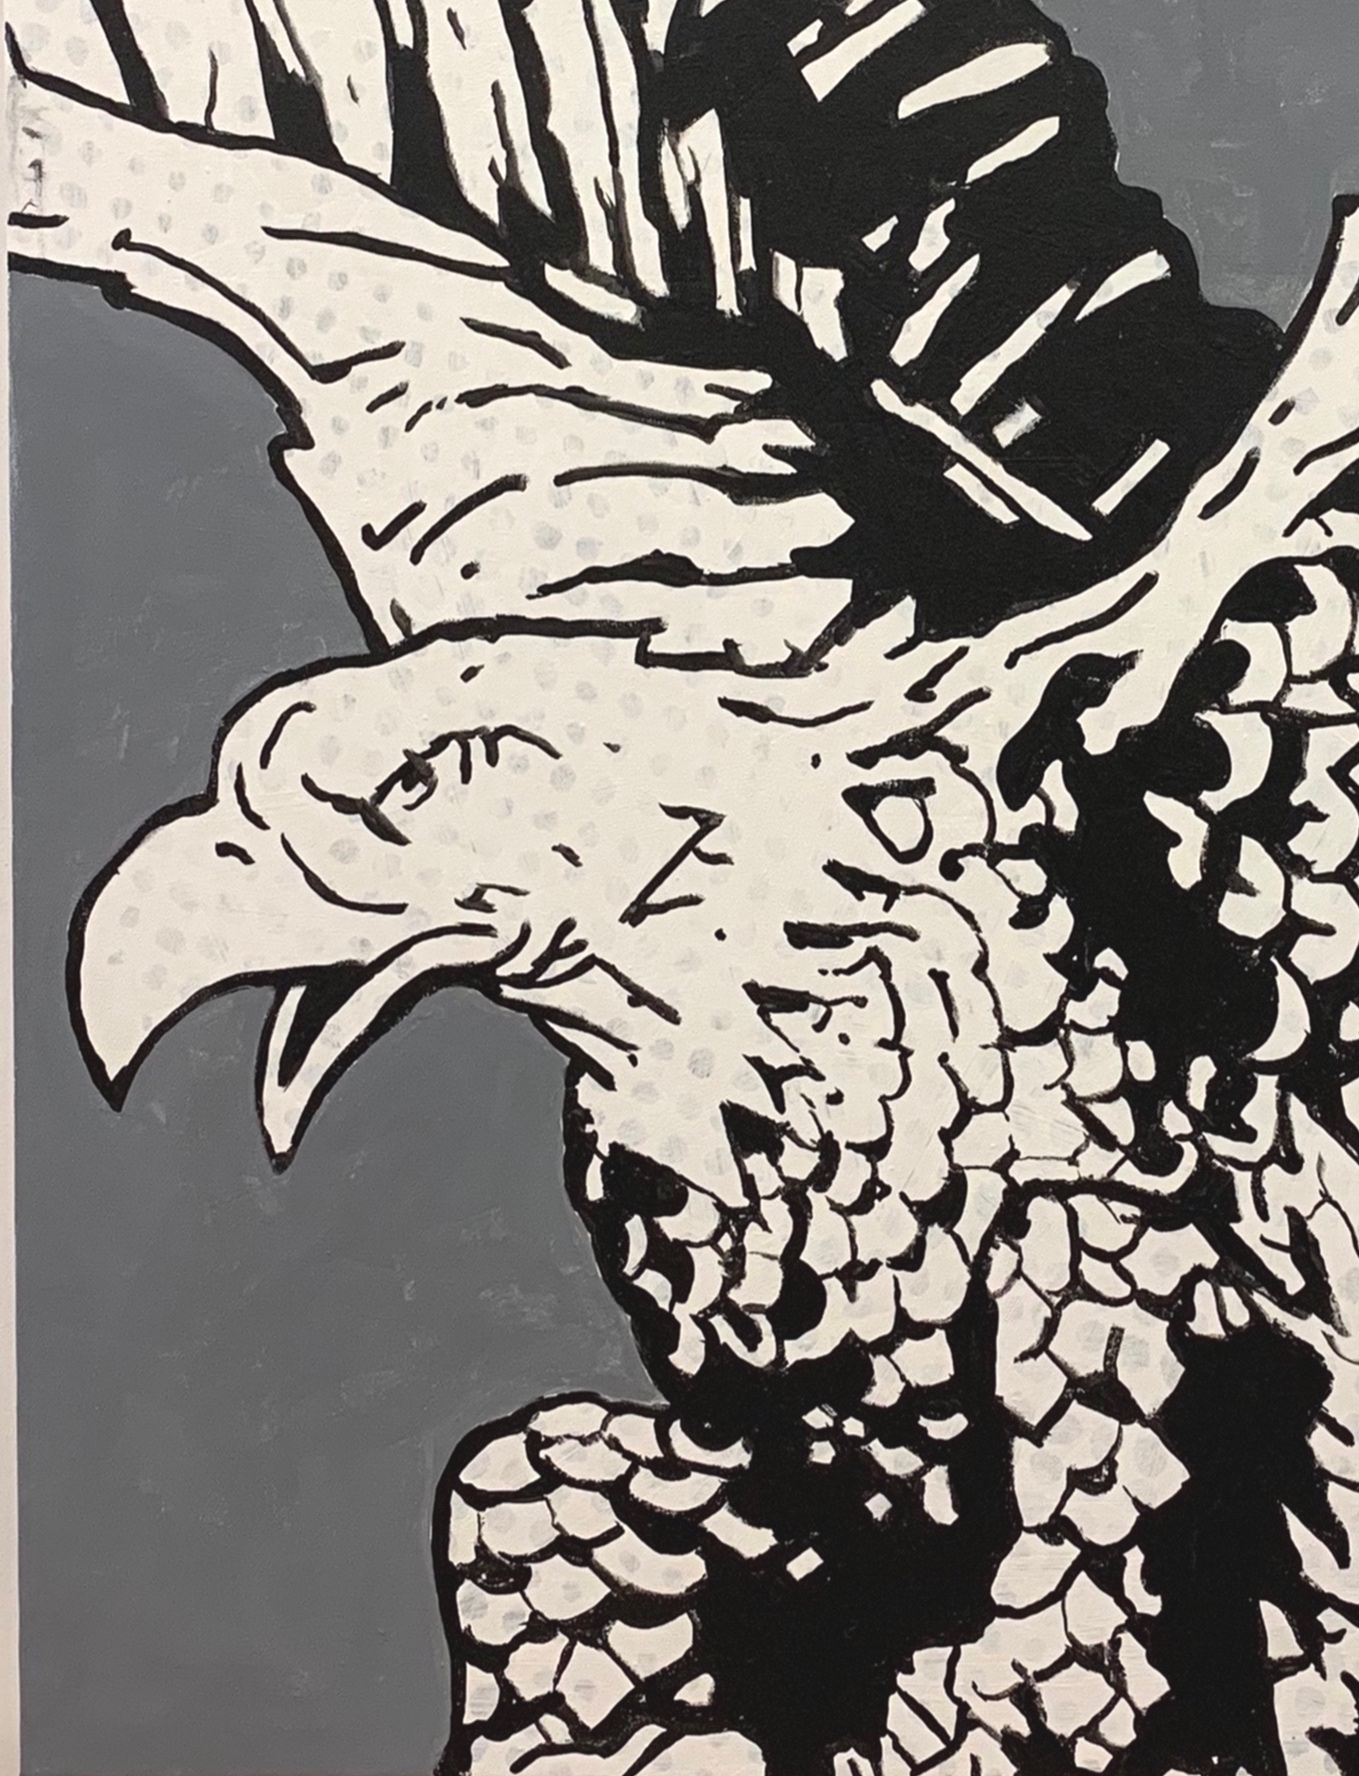 "Eagle, 2019, oil on canvas, 48"" x 36"" inches"